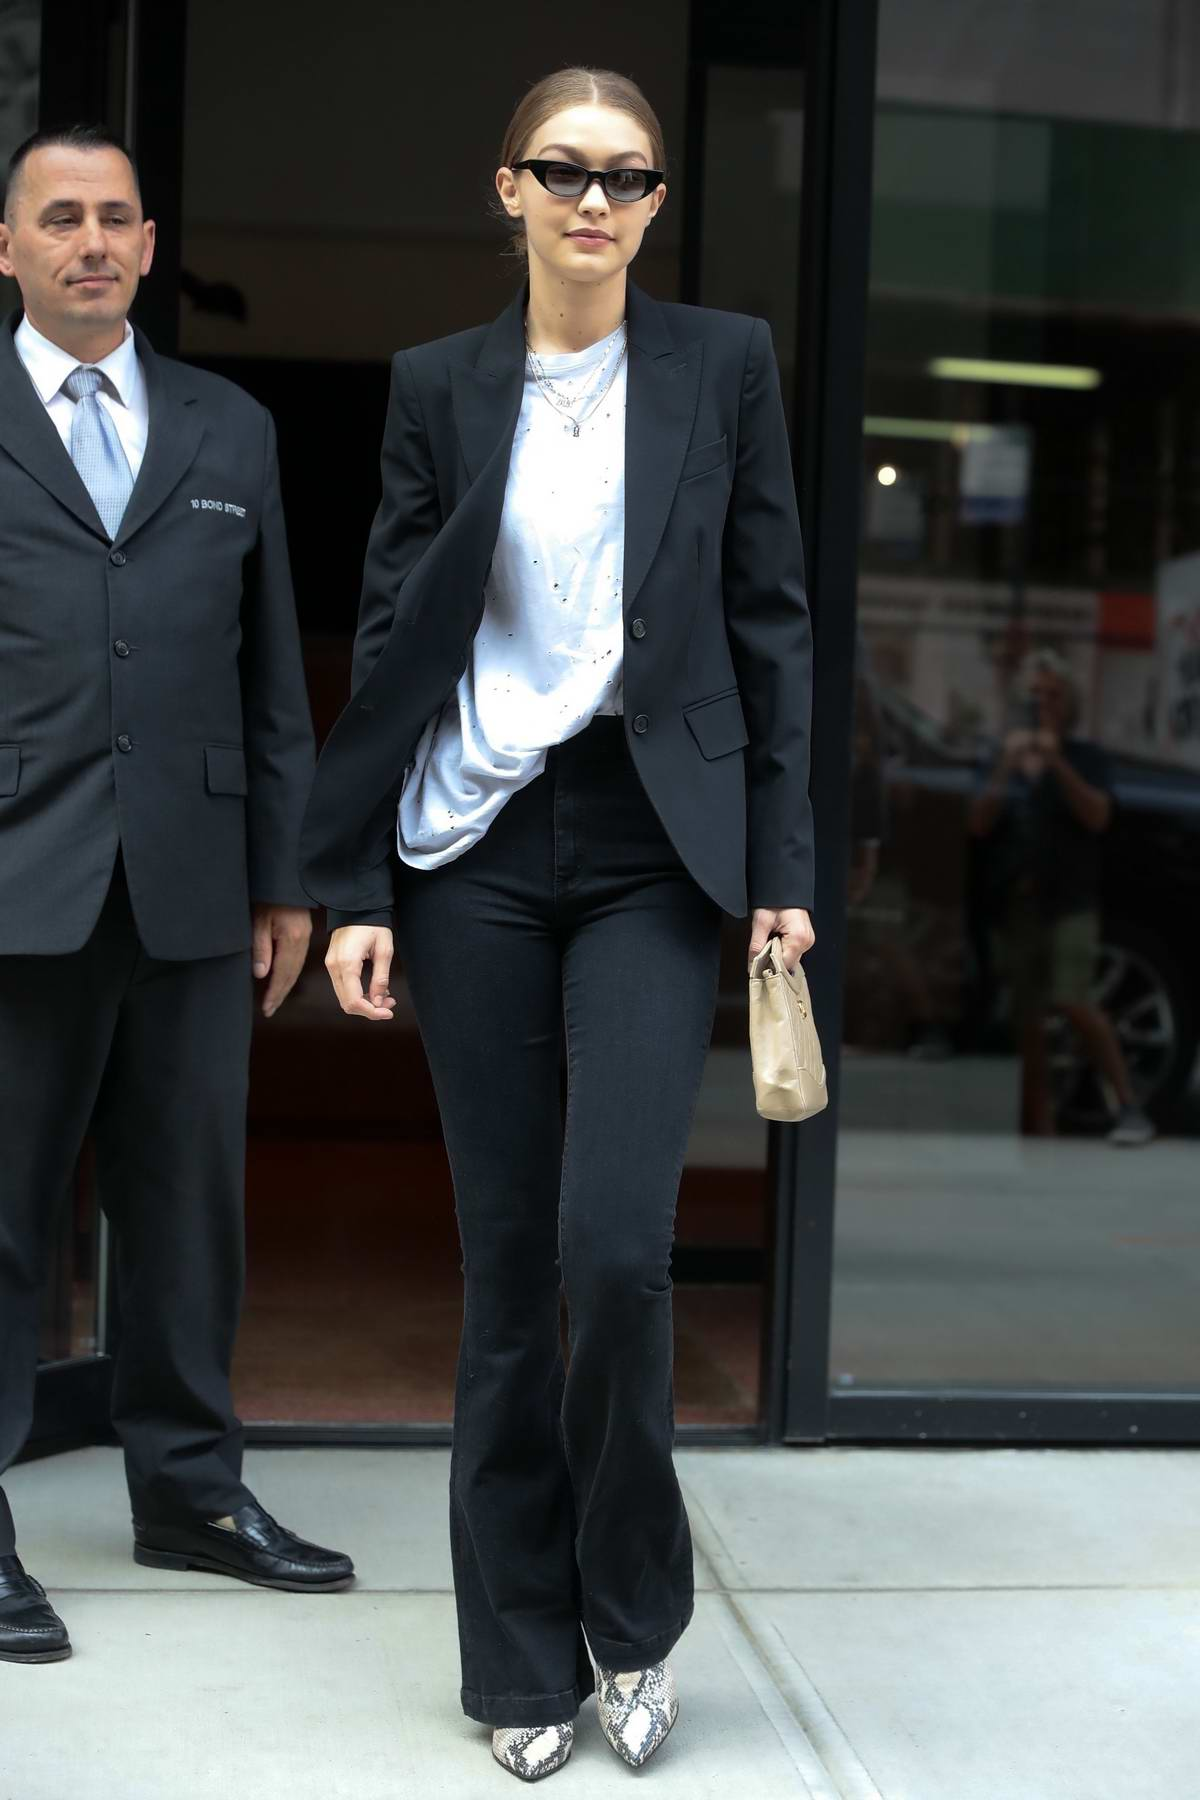 Gigi Hadid shows off a business chic look as she leaves her apartment in New York City